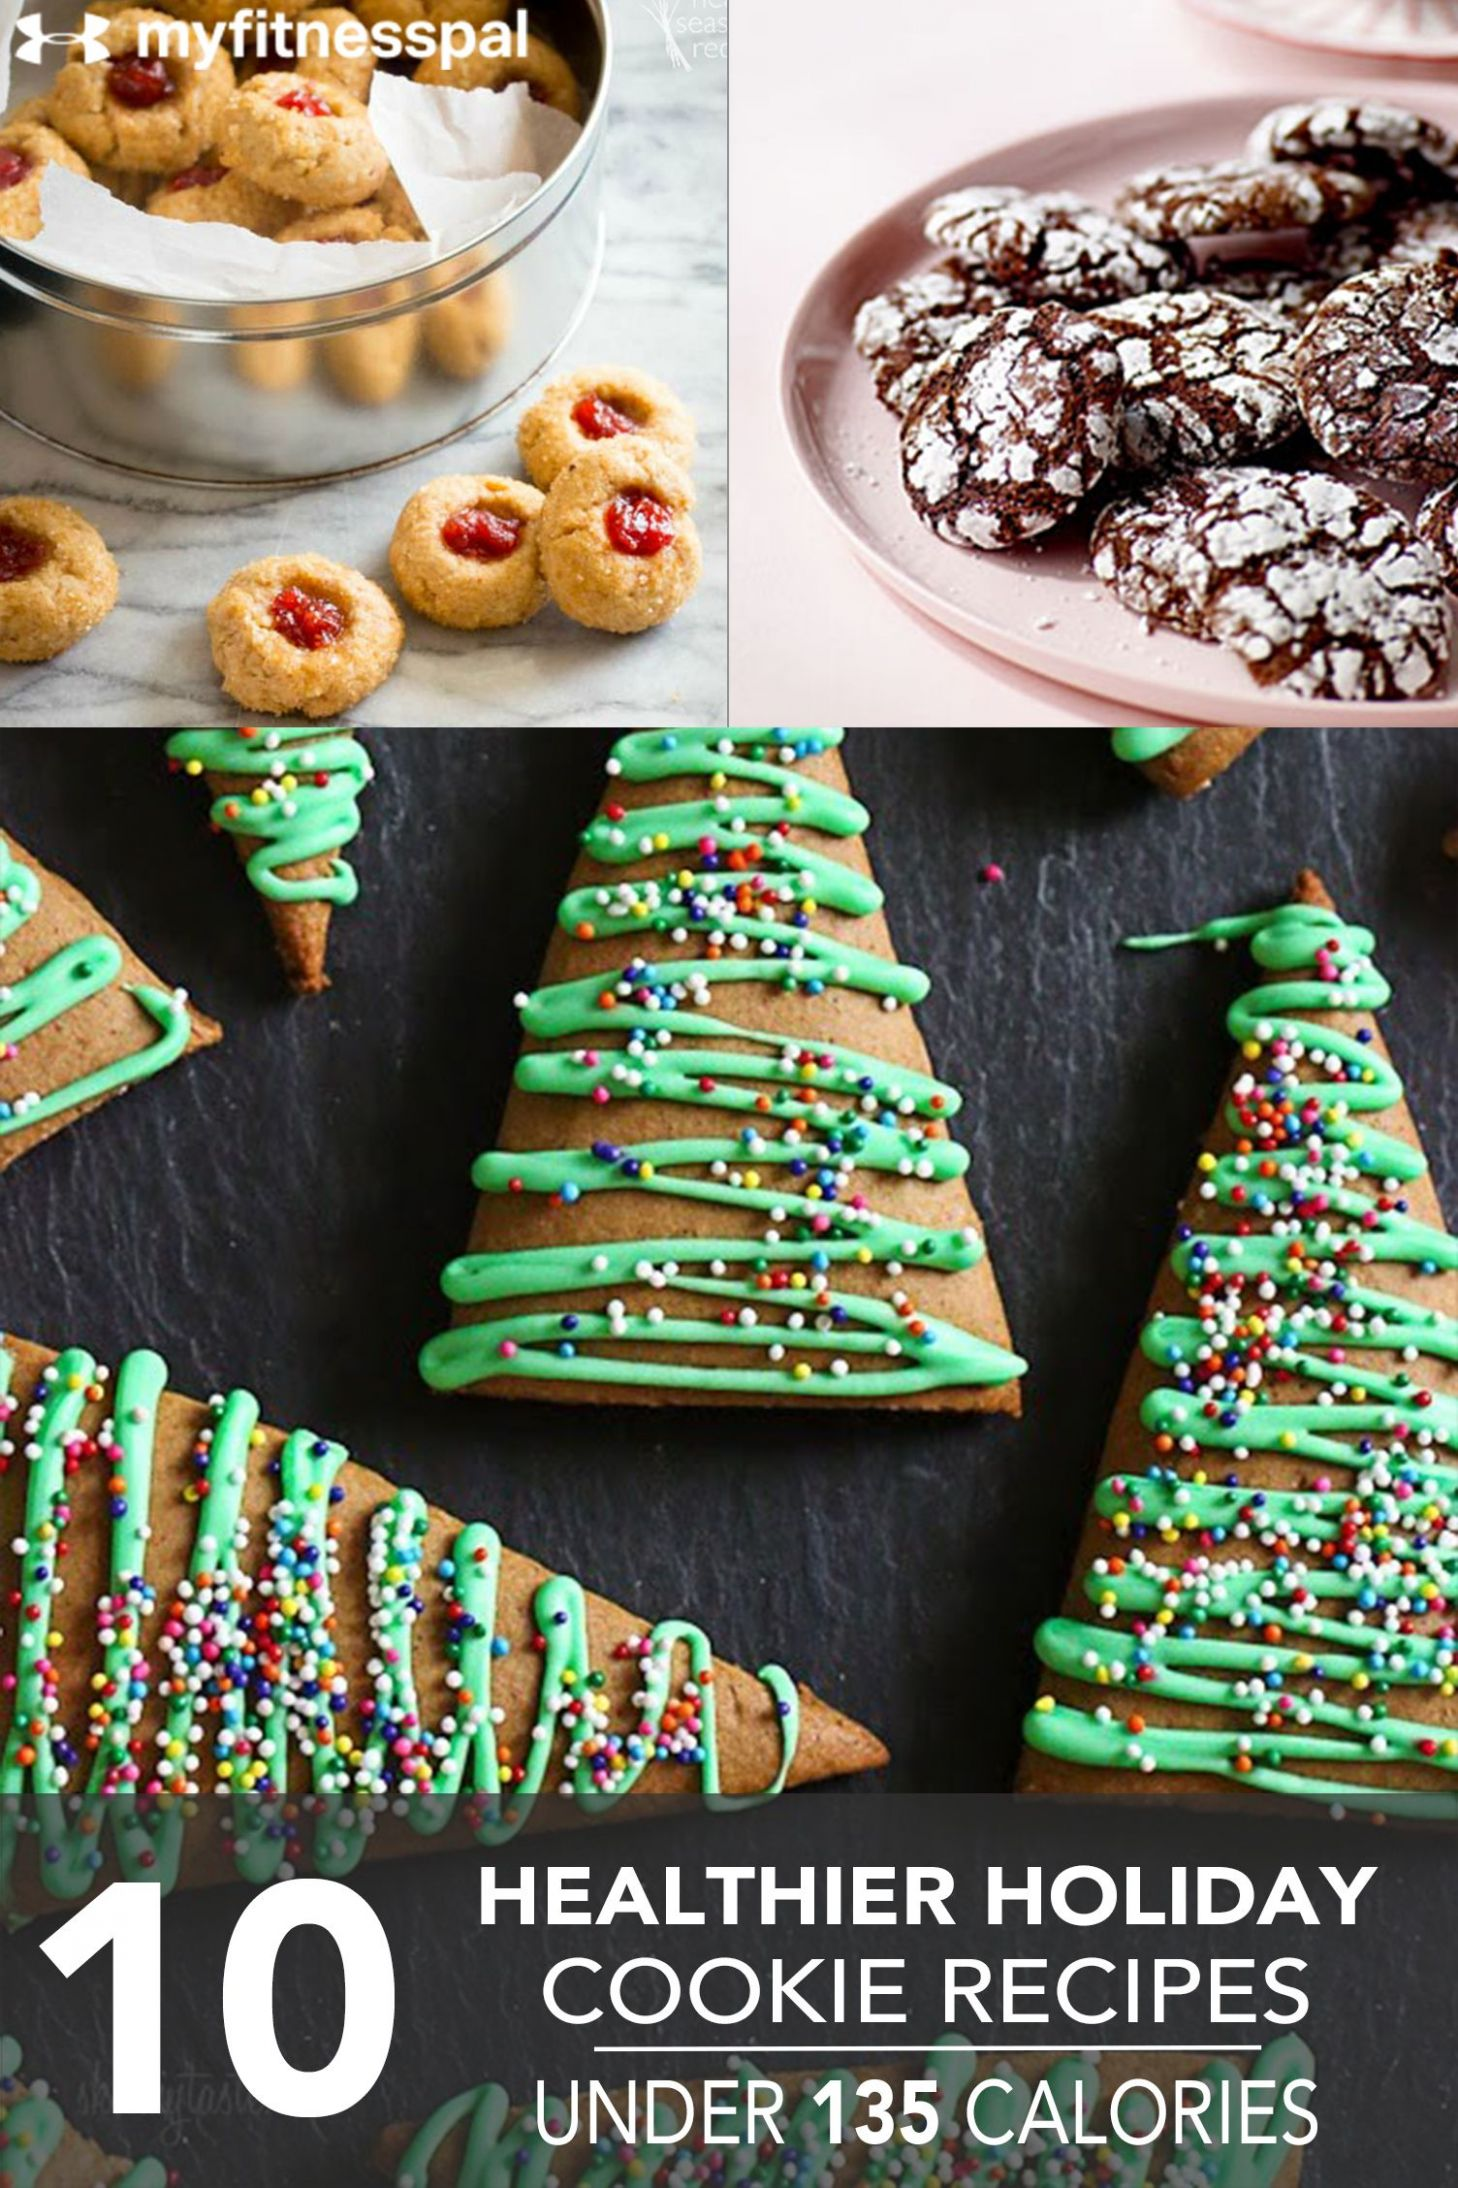 8 Healthier Holiday Cookie Recipes Under 8 Calories | Healthy ..